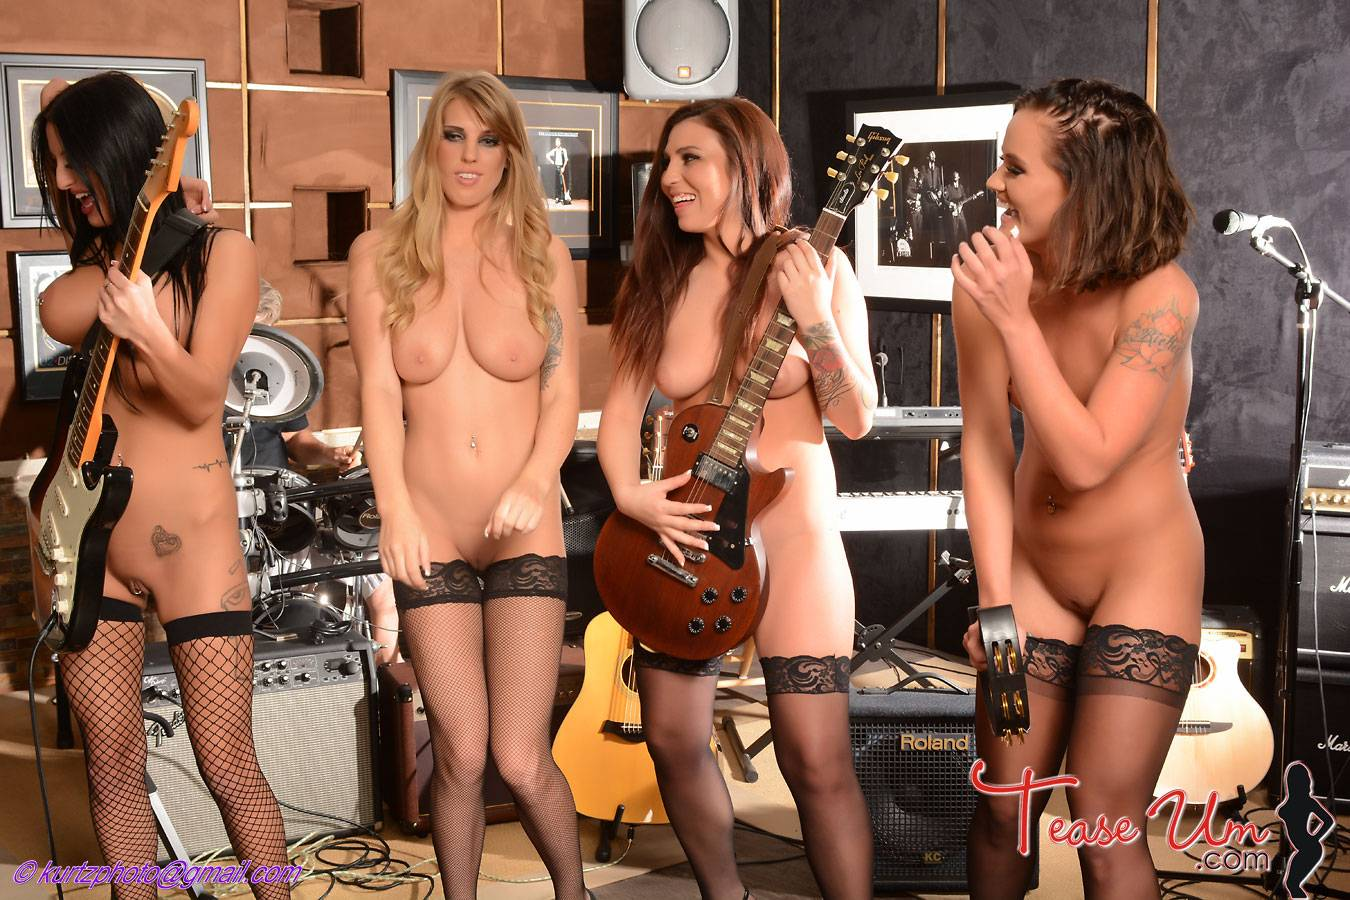 Band with naked girls picture 416